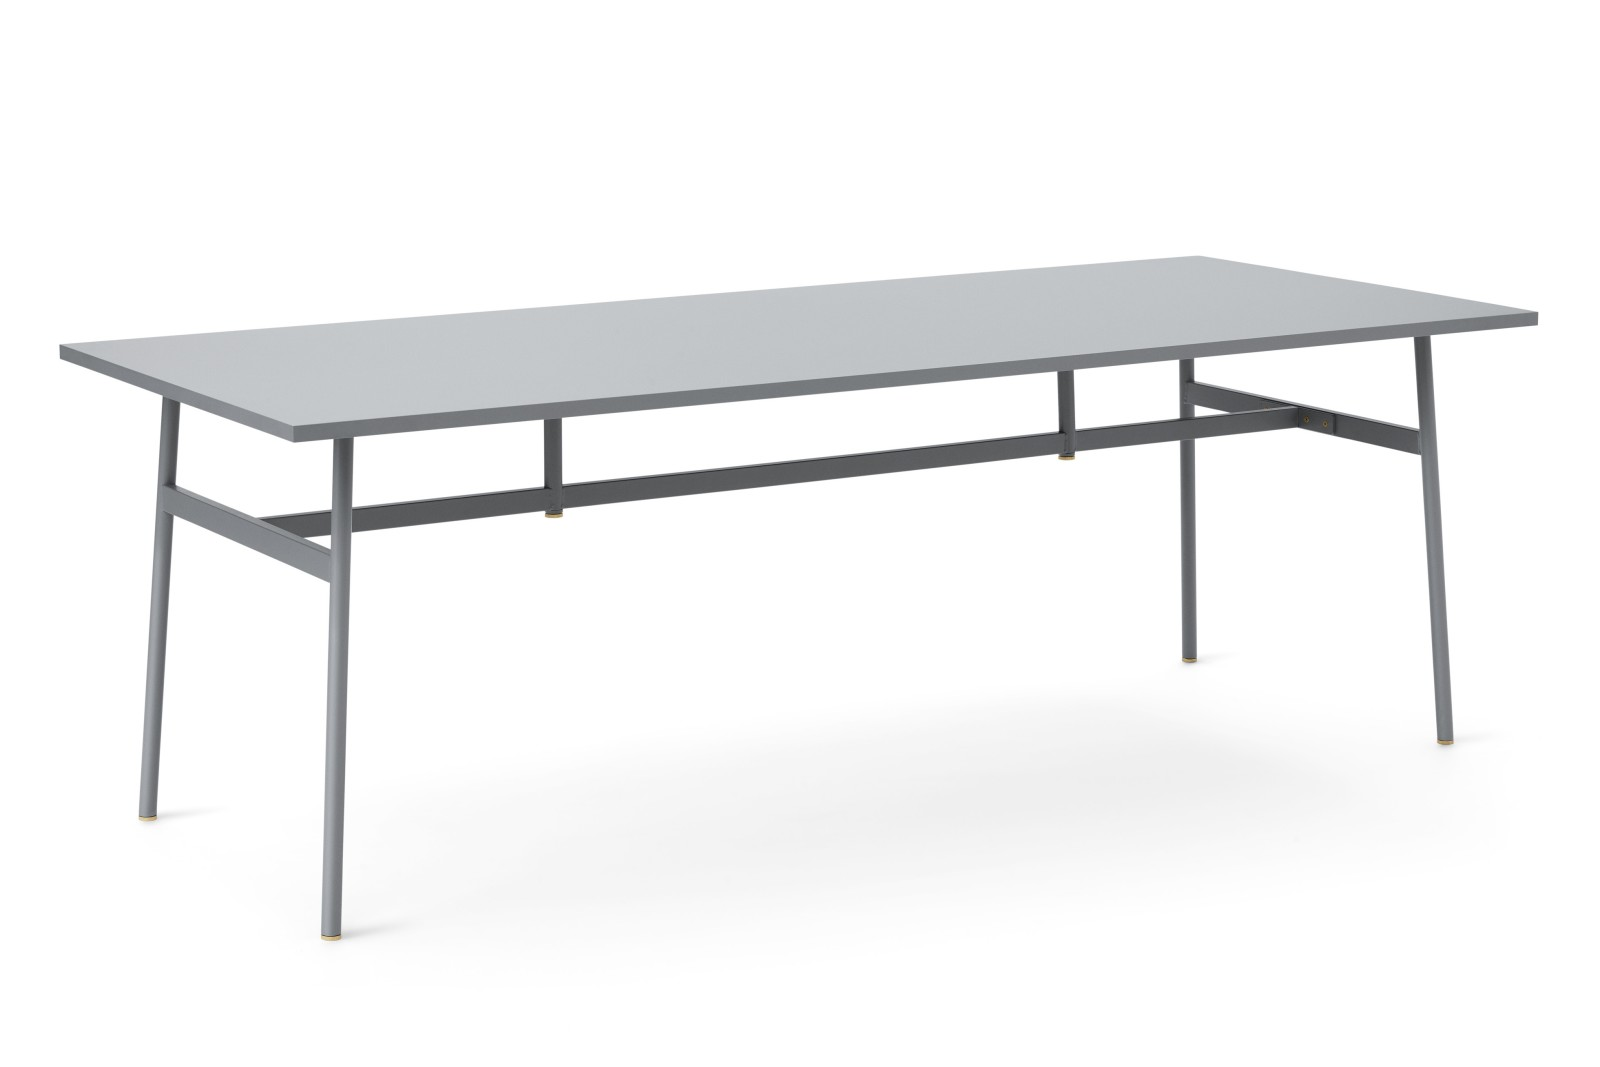 Union Rectangular Dining Table Grey, 220